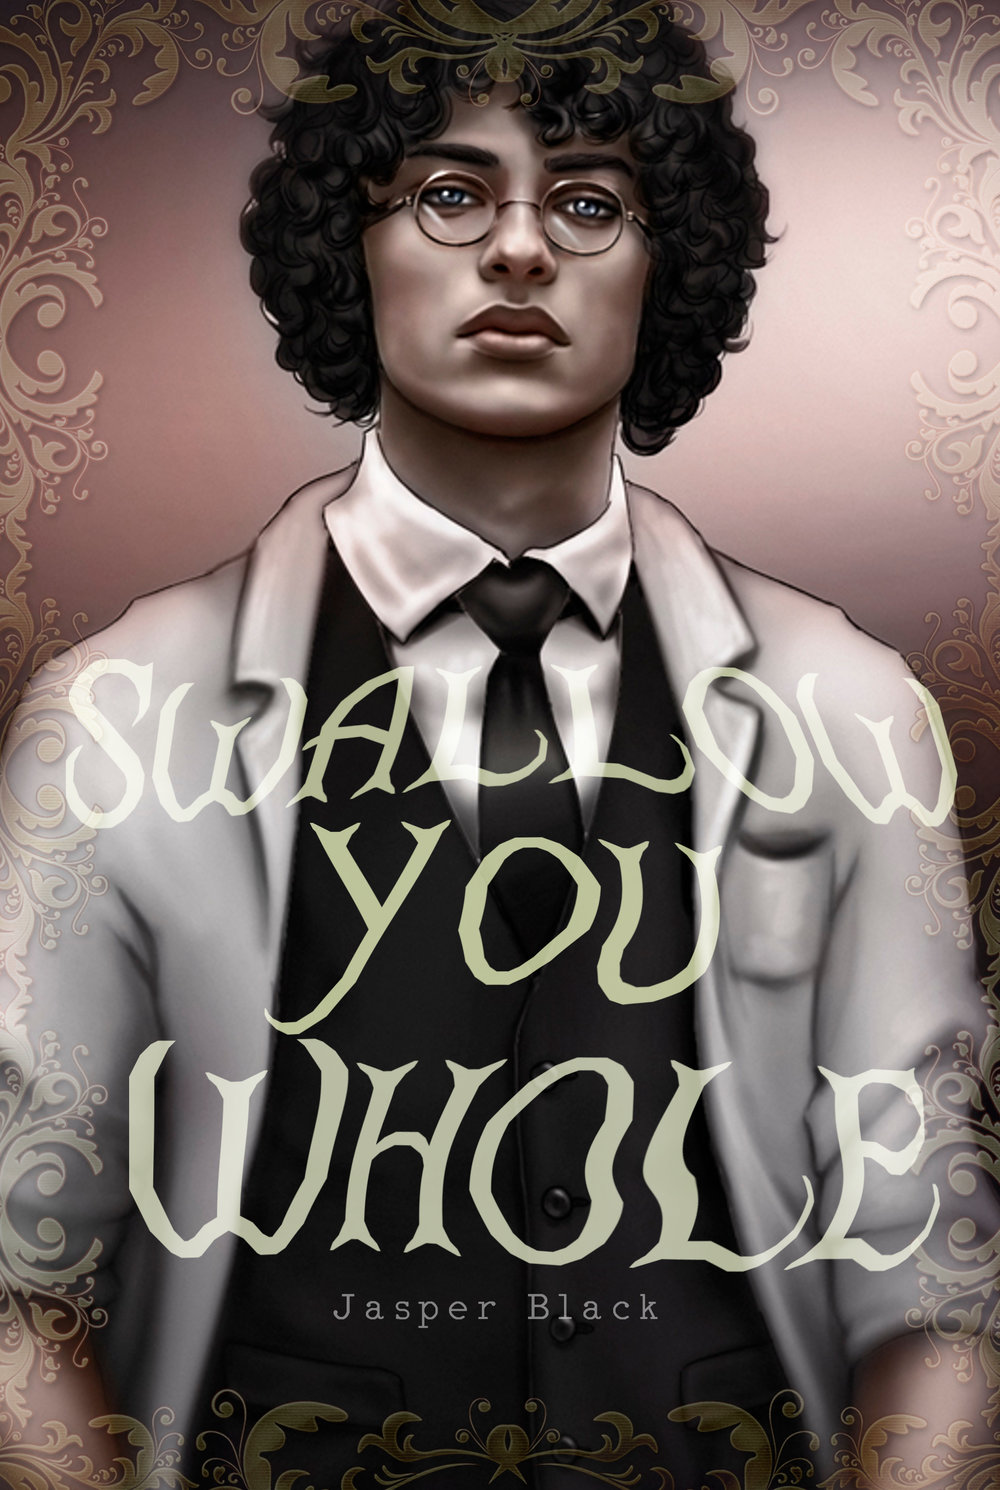 Book #1 - Swallow You Whole (2016)